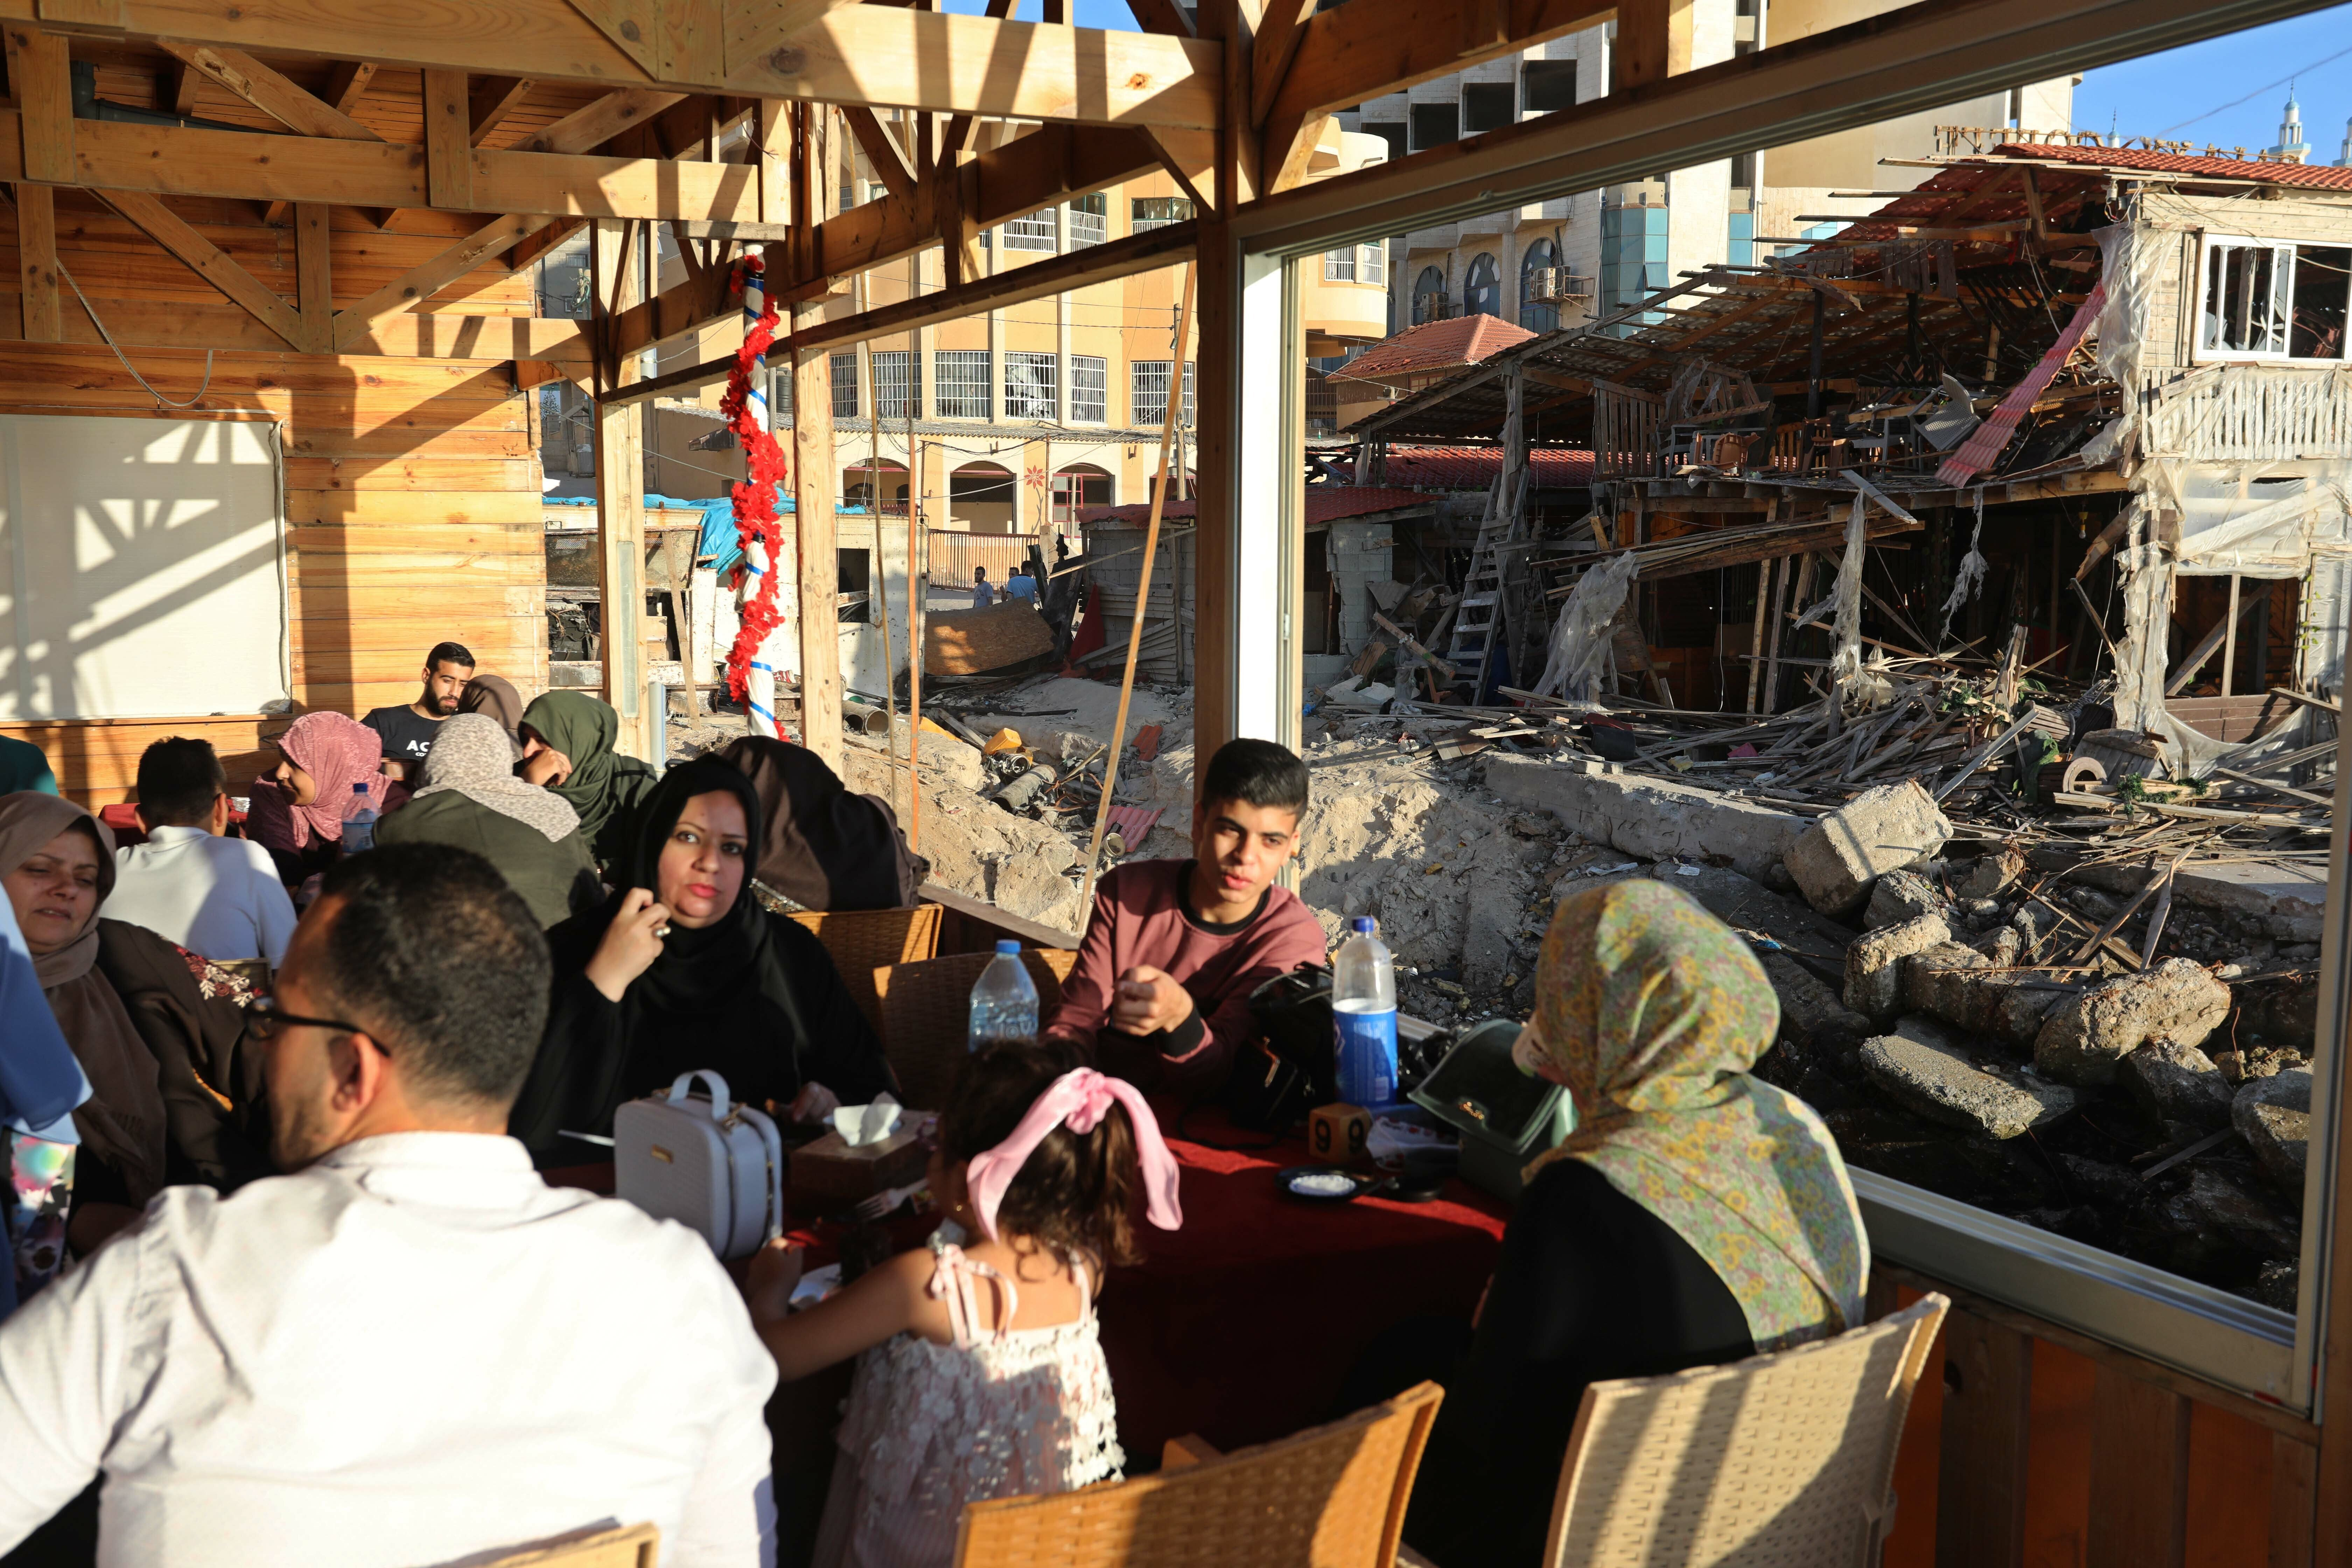 Palestinians converge at destroyed cafe following Israeli attacks on Gaza